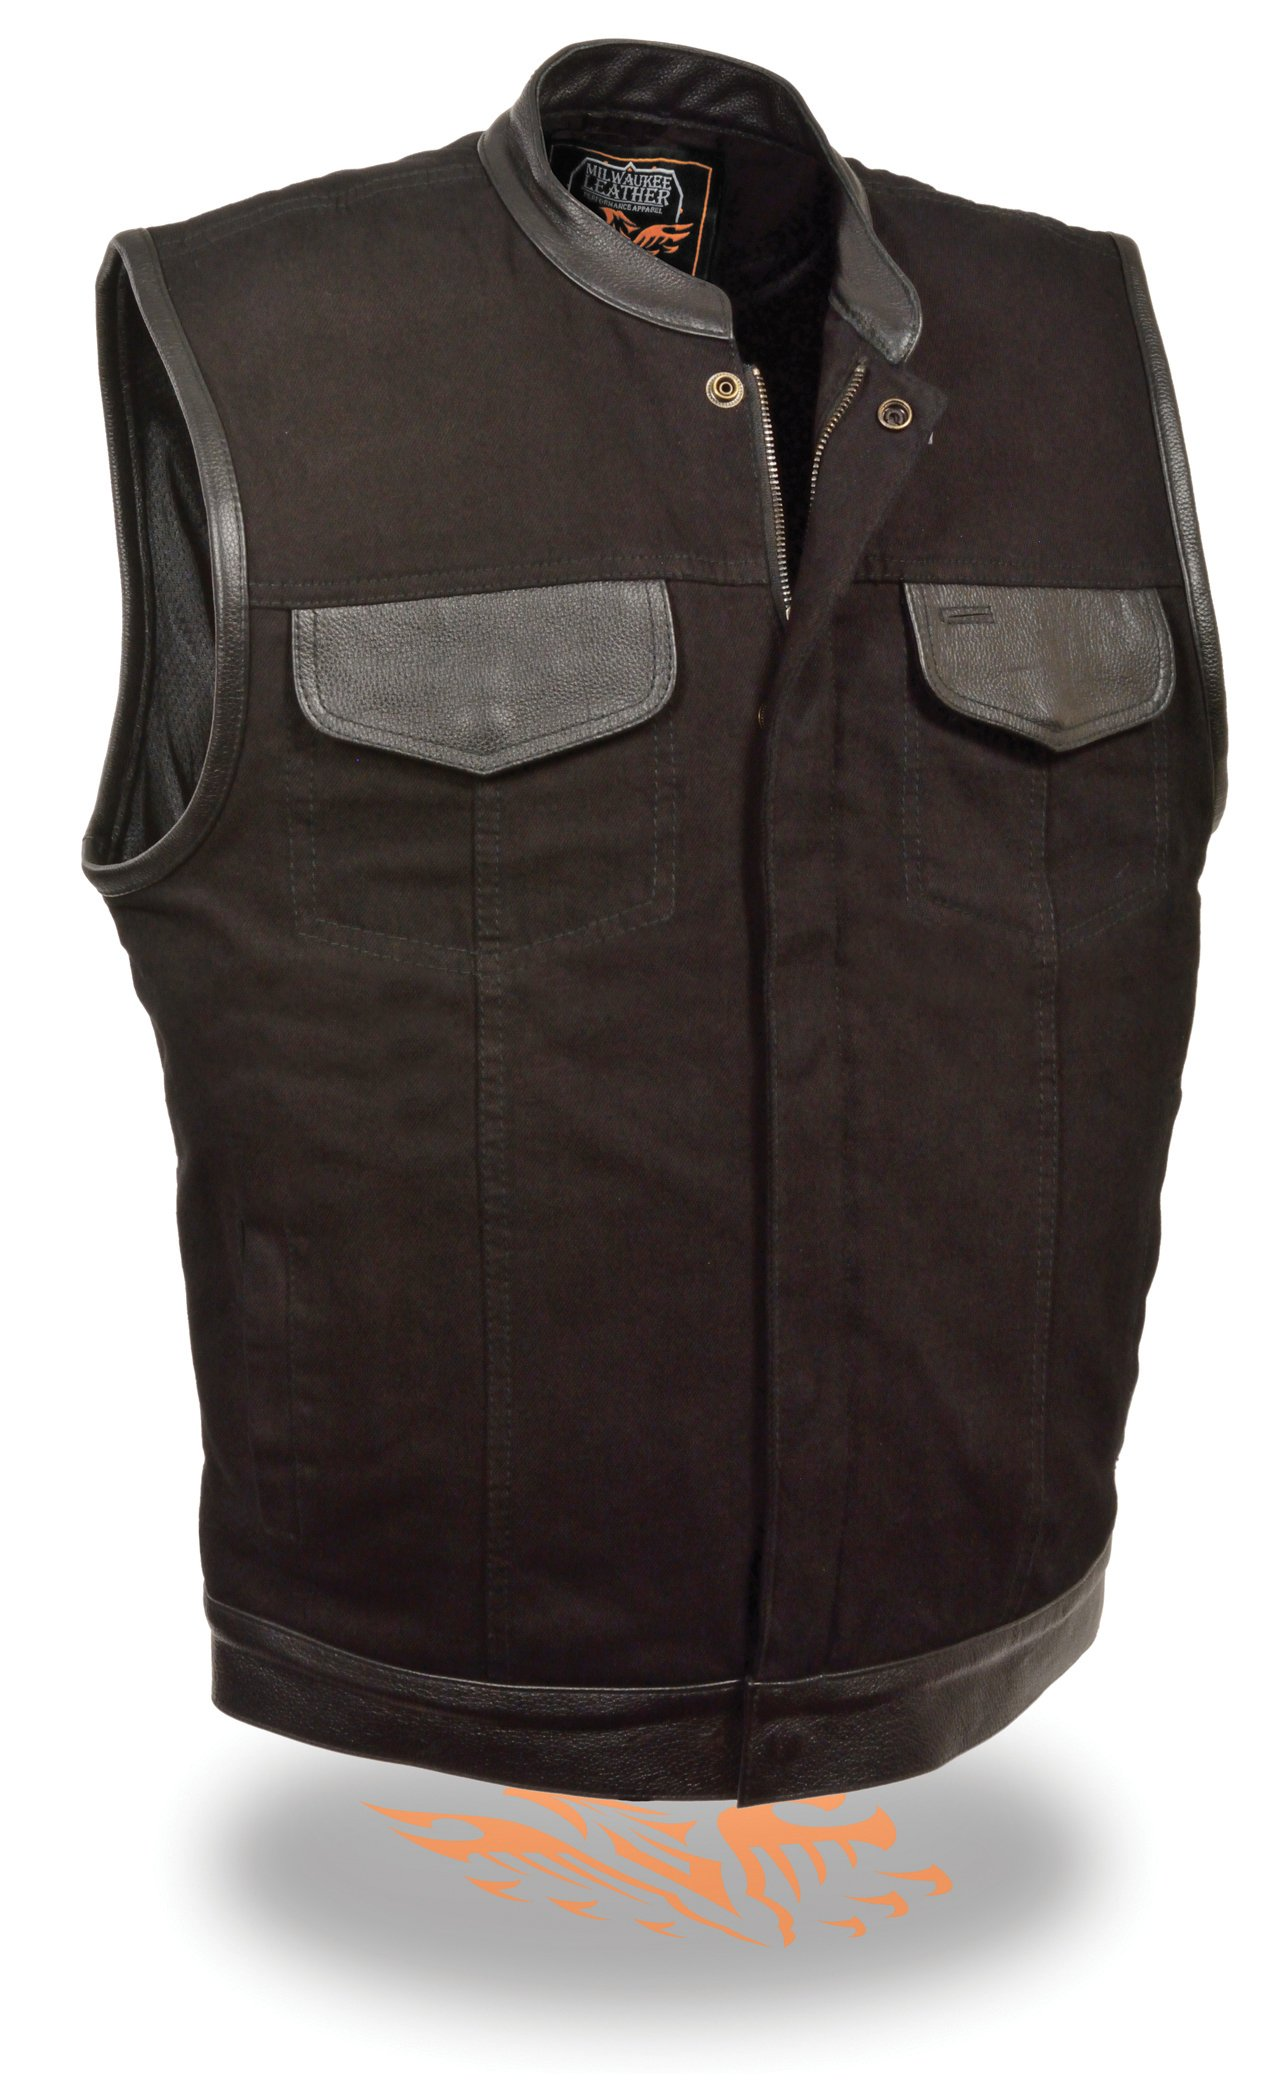 The Ultimate One Stop Shop for All Club Style Zipper Front Vests - All Varieties of Club Cut Vests Leather & Denim (4X - Big, Leather Trim)